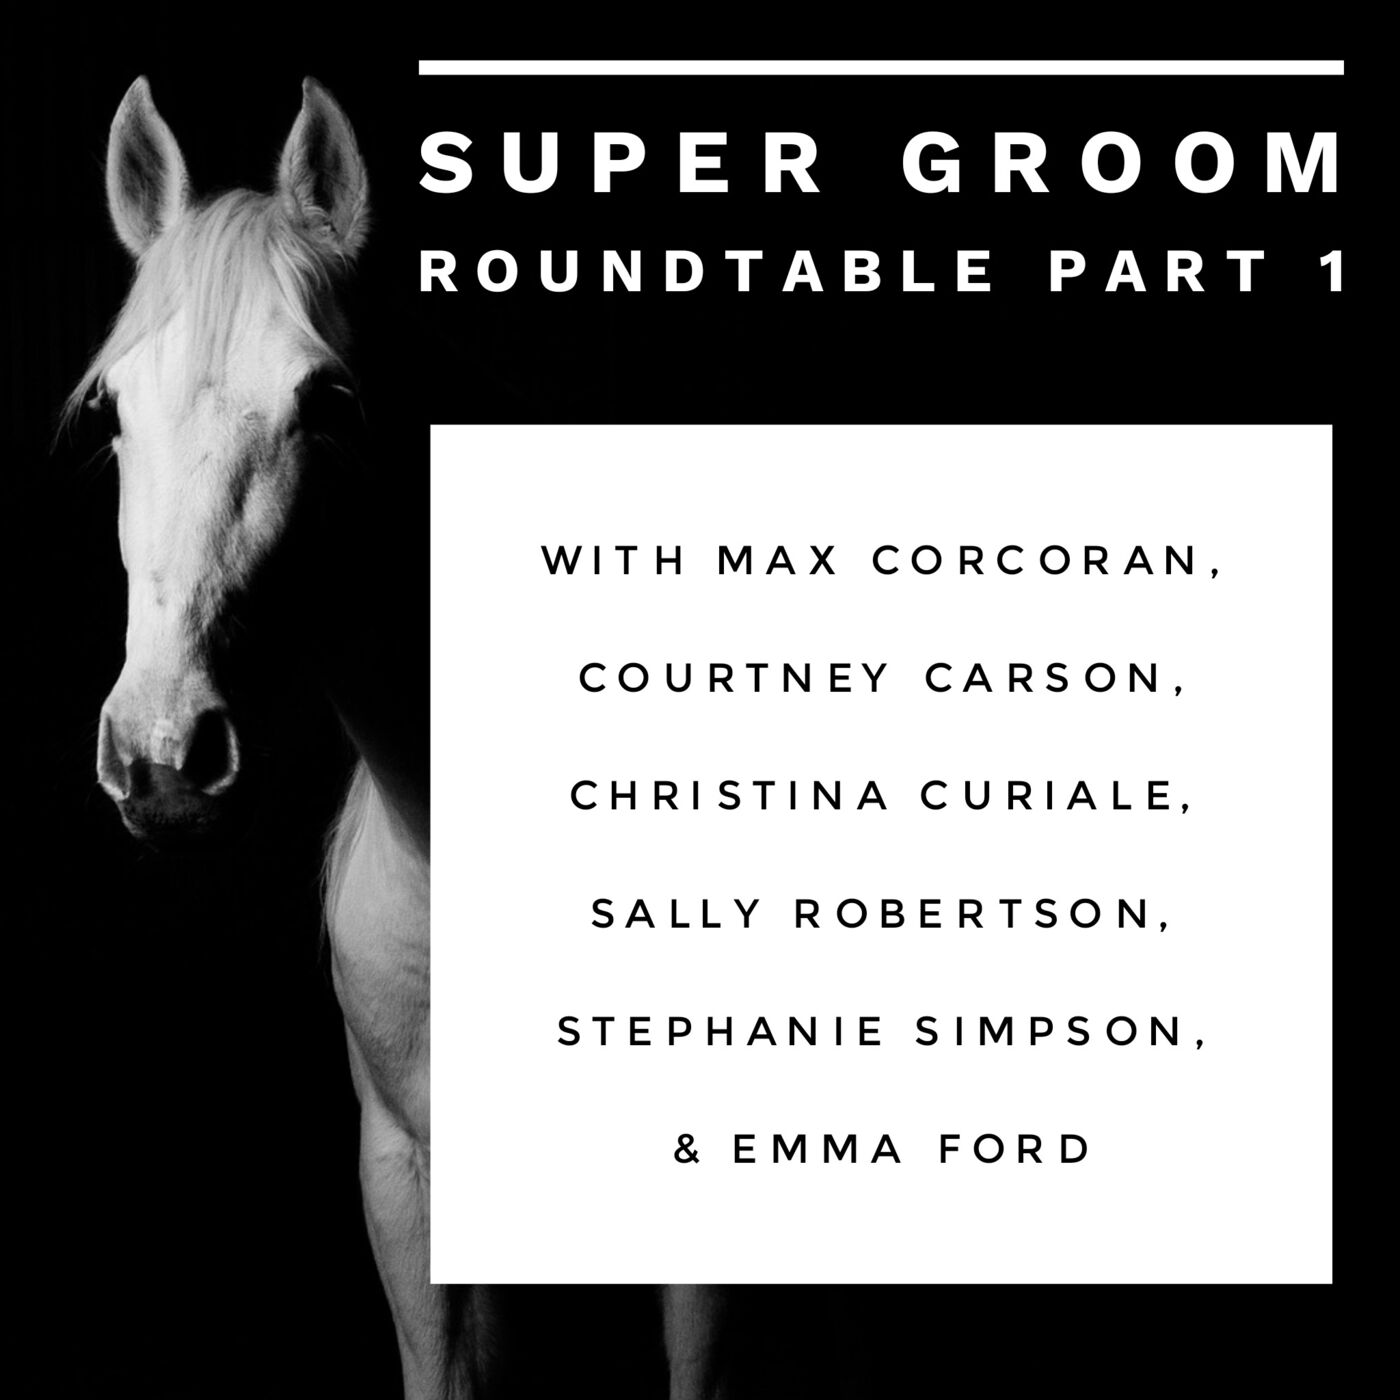 #142 Super Groom roundtable Part 1